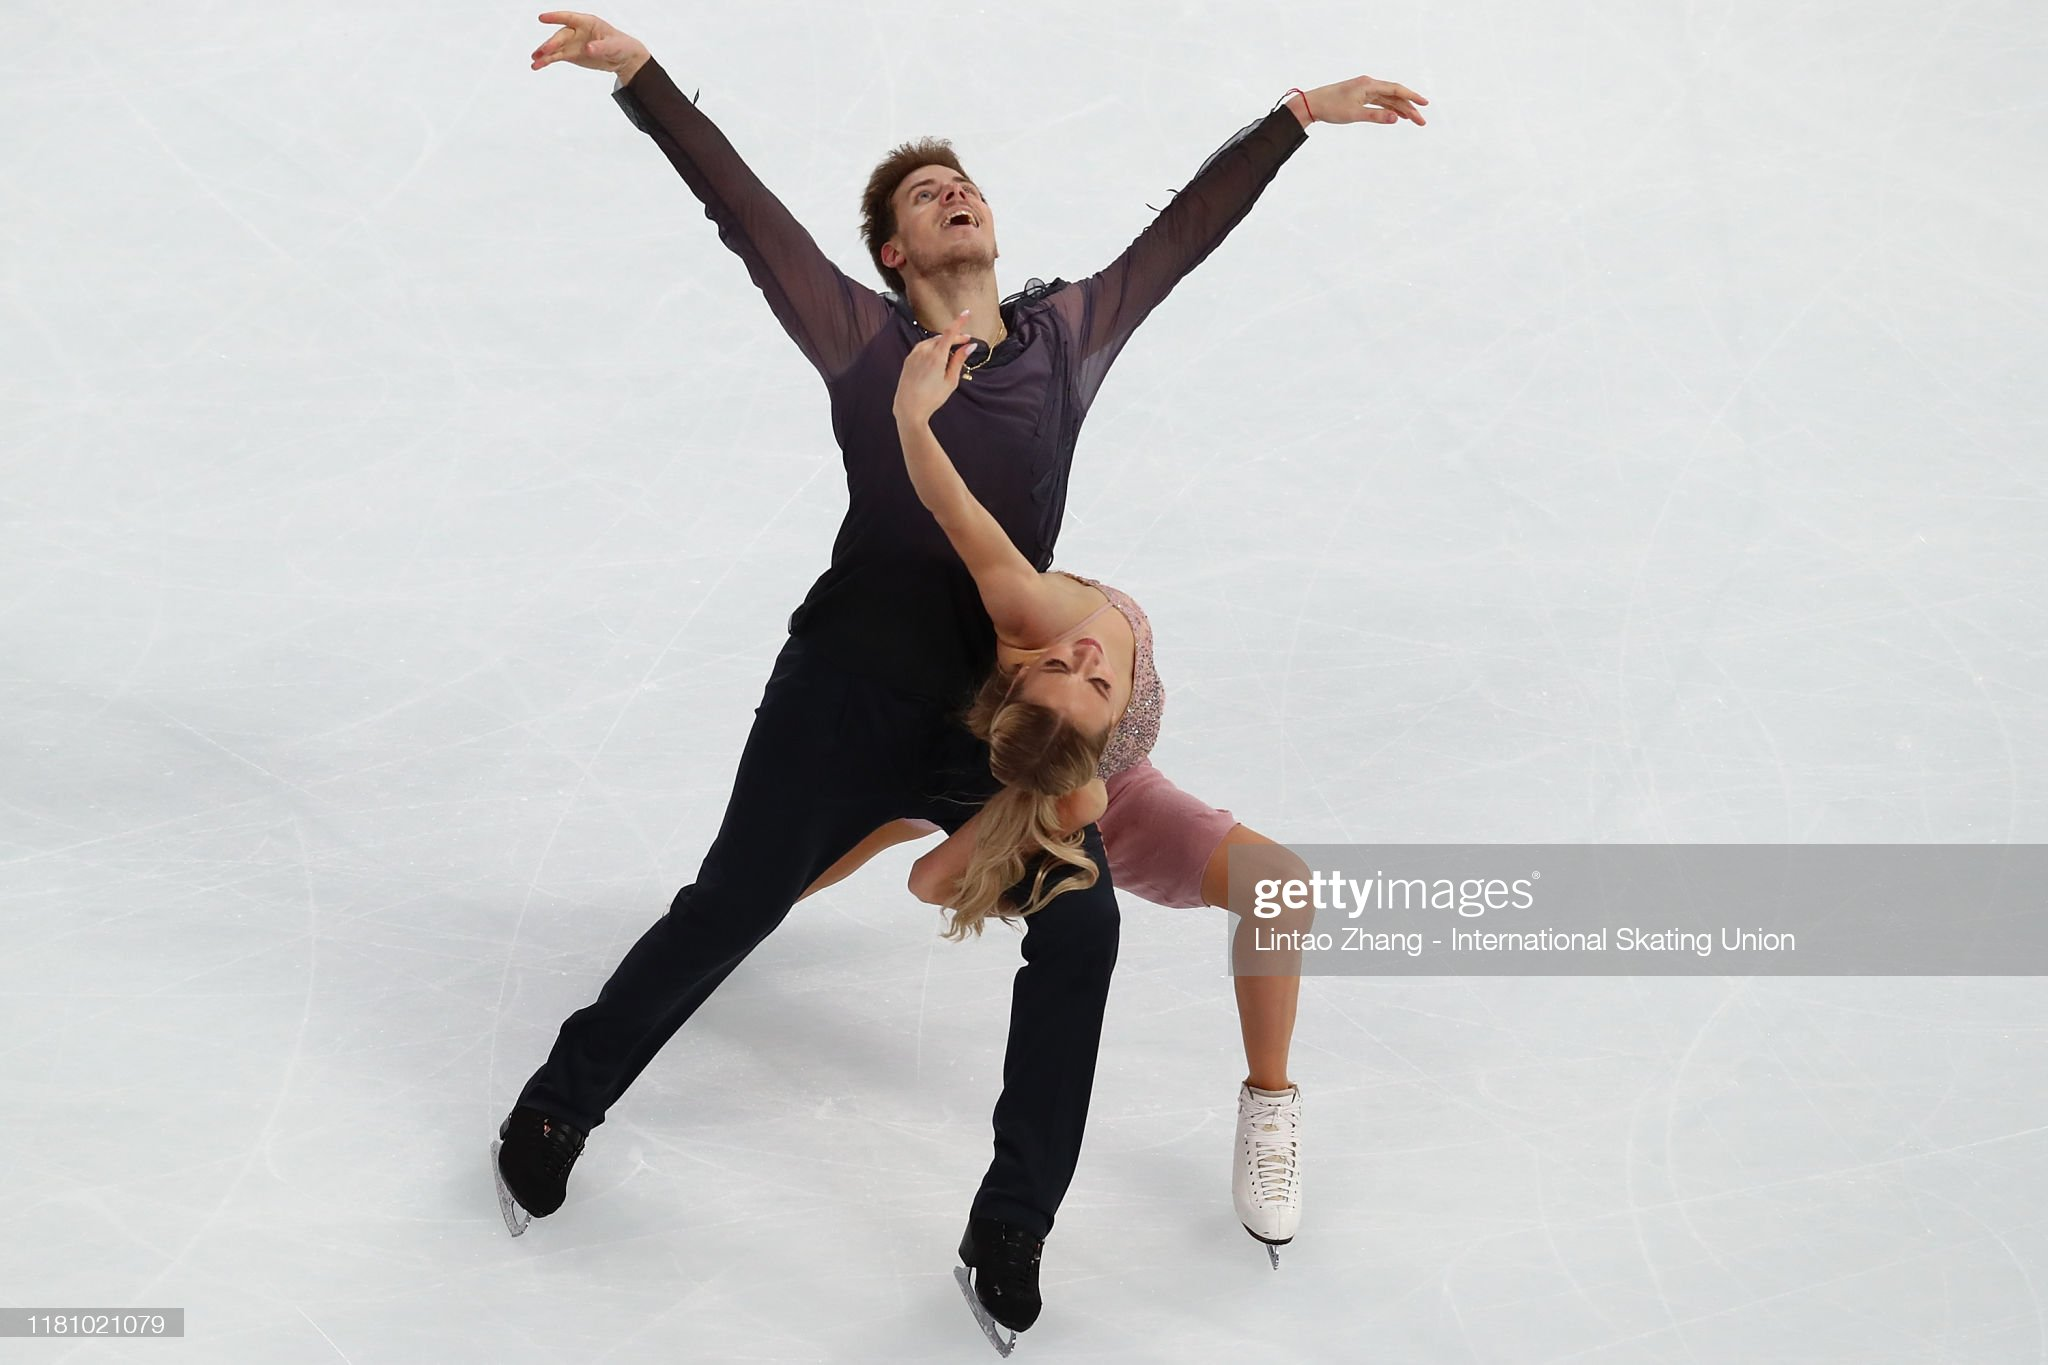 https://media.gettyimages.com/photos/victoria-sinitsina-and-nikita-katsalapov-of-russia-performs-in-the-picture-id1181021079?s=2048x2048